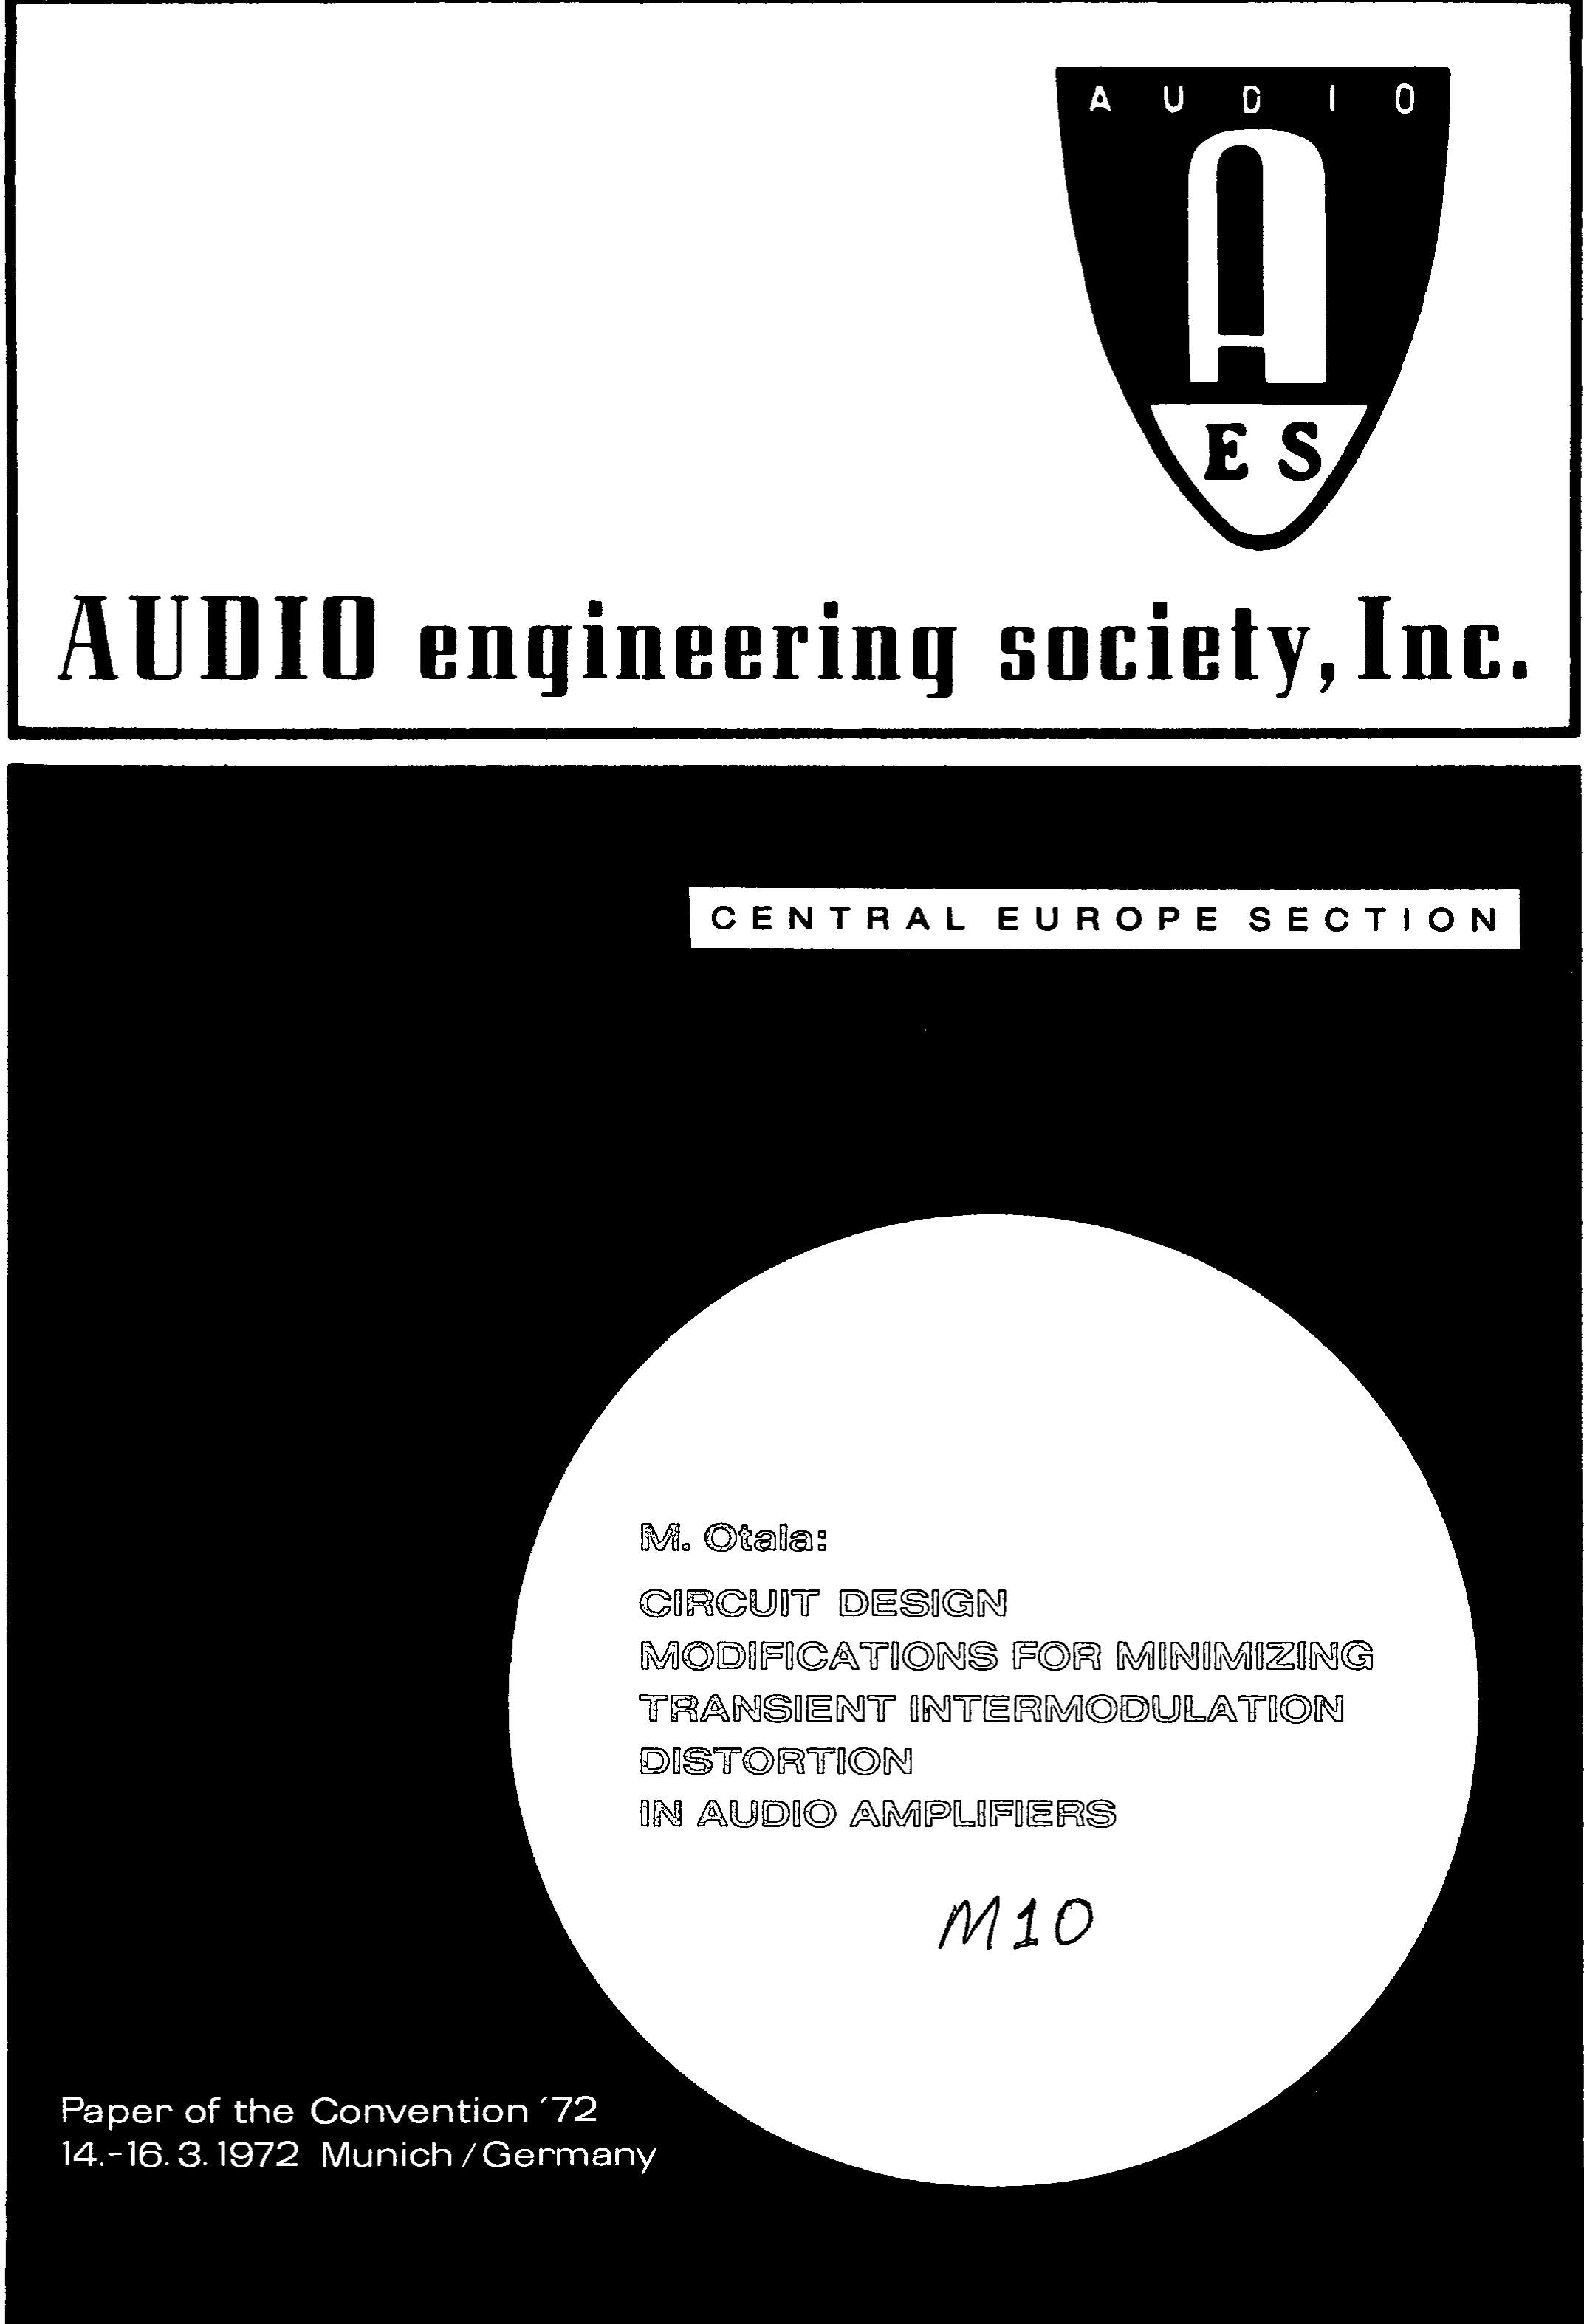 Aes E Library Circuit Design Modifications And Minimizing The Transformerless Mains High Low Voltage Cut Off Version Of Transient Intermodulation Distortion In Audio Amplifiers